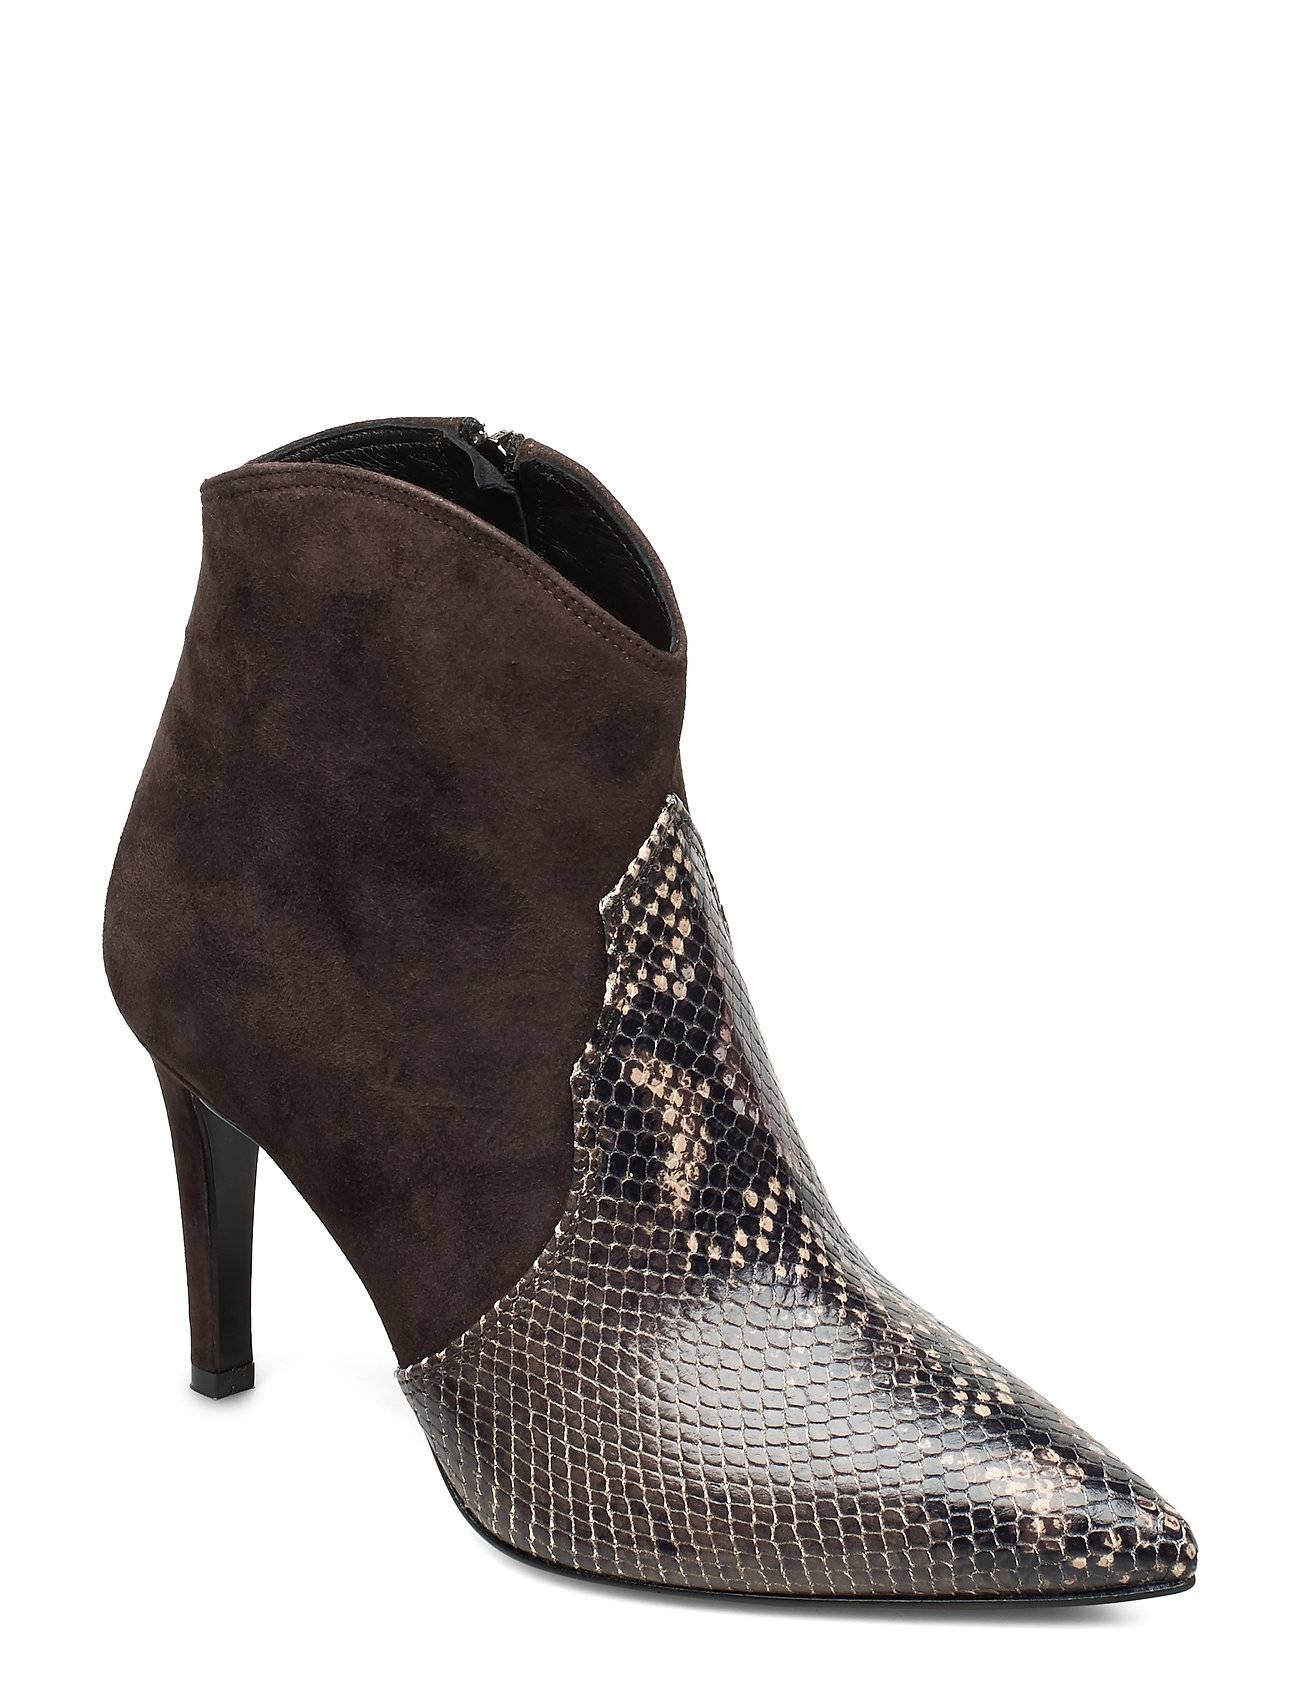 Apair Party Western 2 Leathers Low Shoes Boots Ankle Boots Ankle Boots With Heel Ruskea Apair